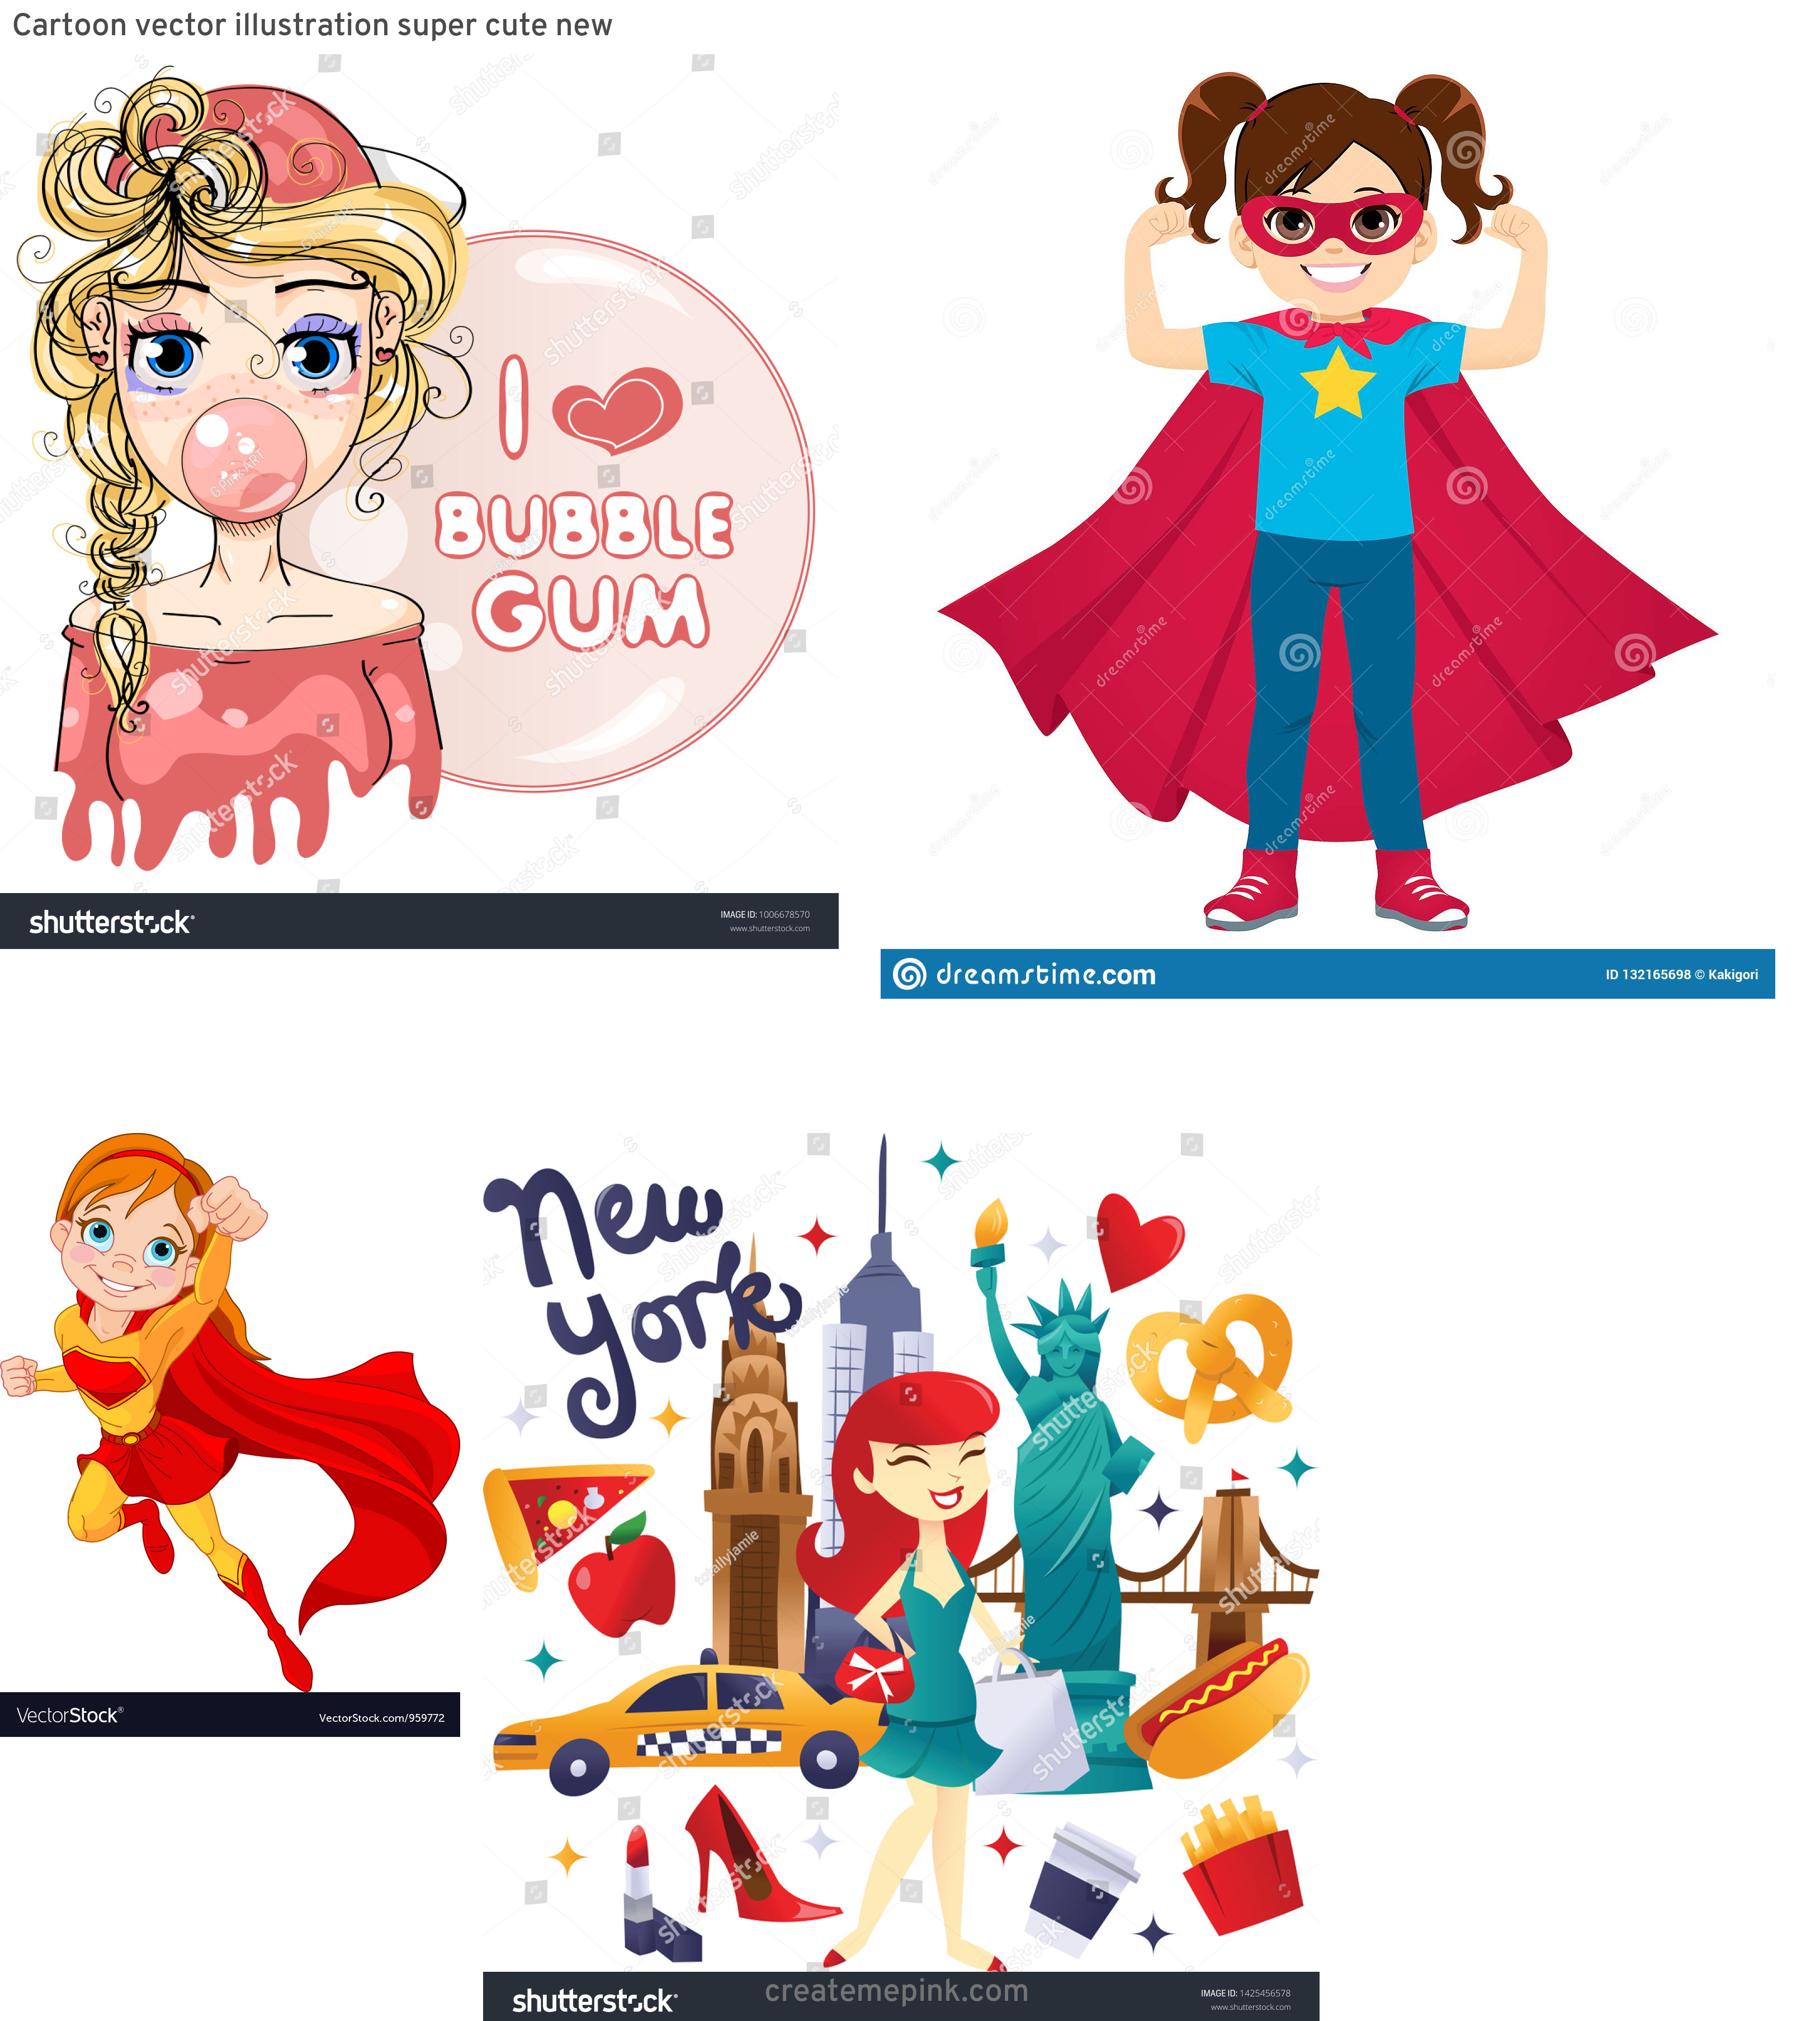 Super Cute Cartoon Girl Vector: Cartoon Vector Illustration Super Cute New